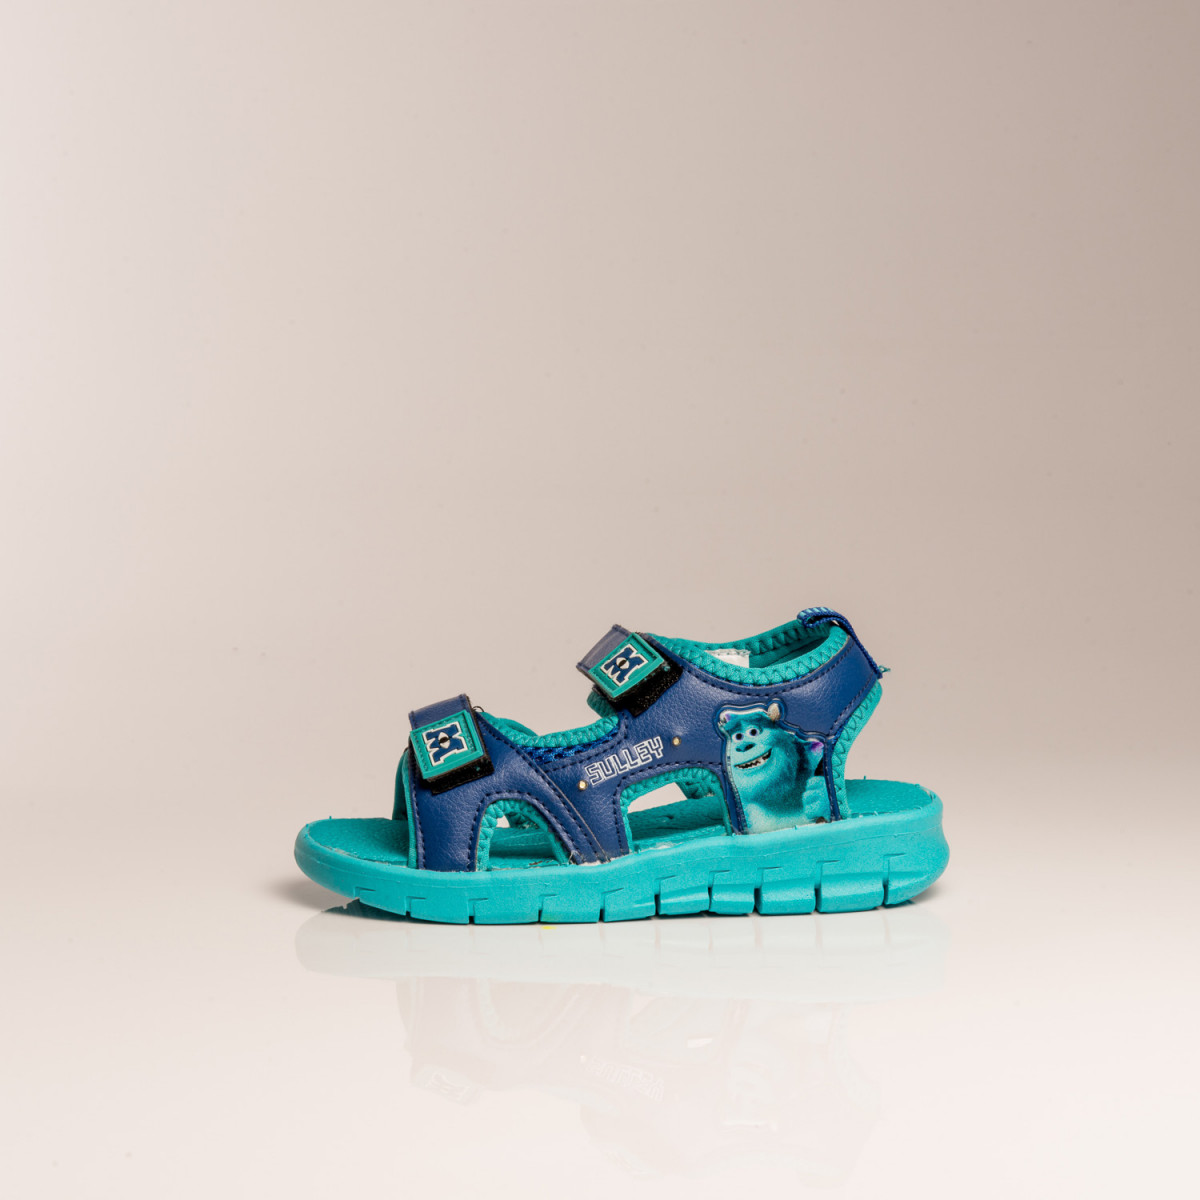 SANDALIAS DISNEY MONSTER INC CON LUZ